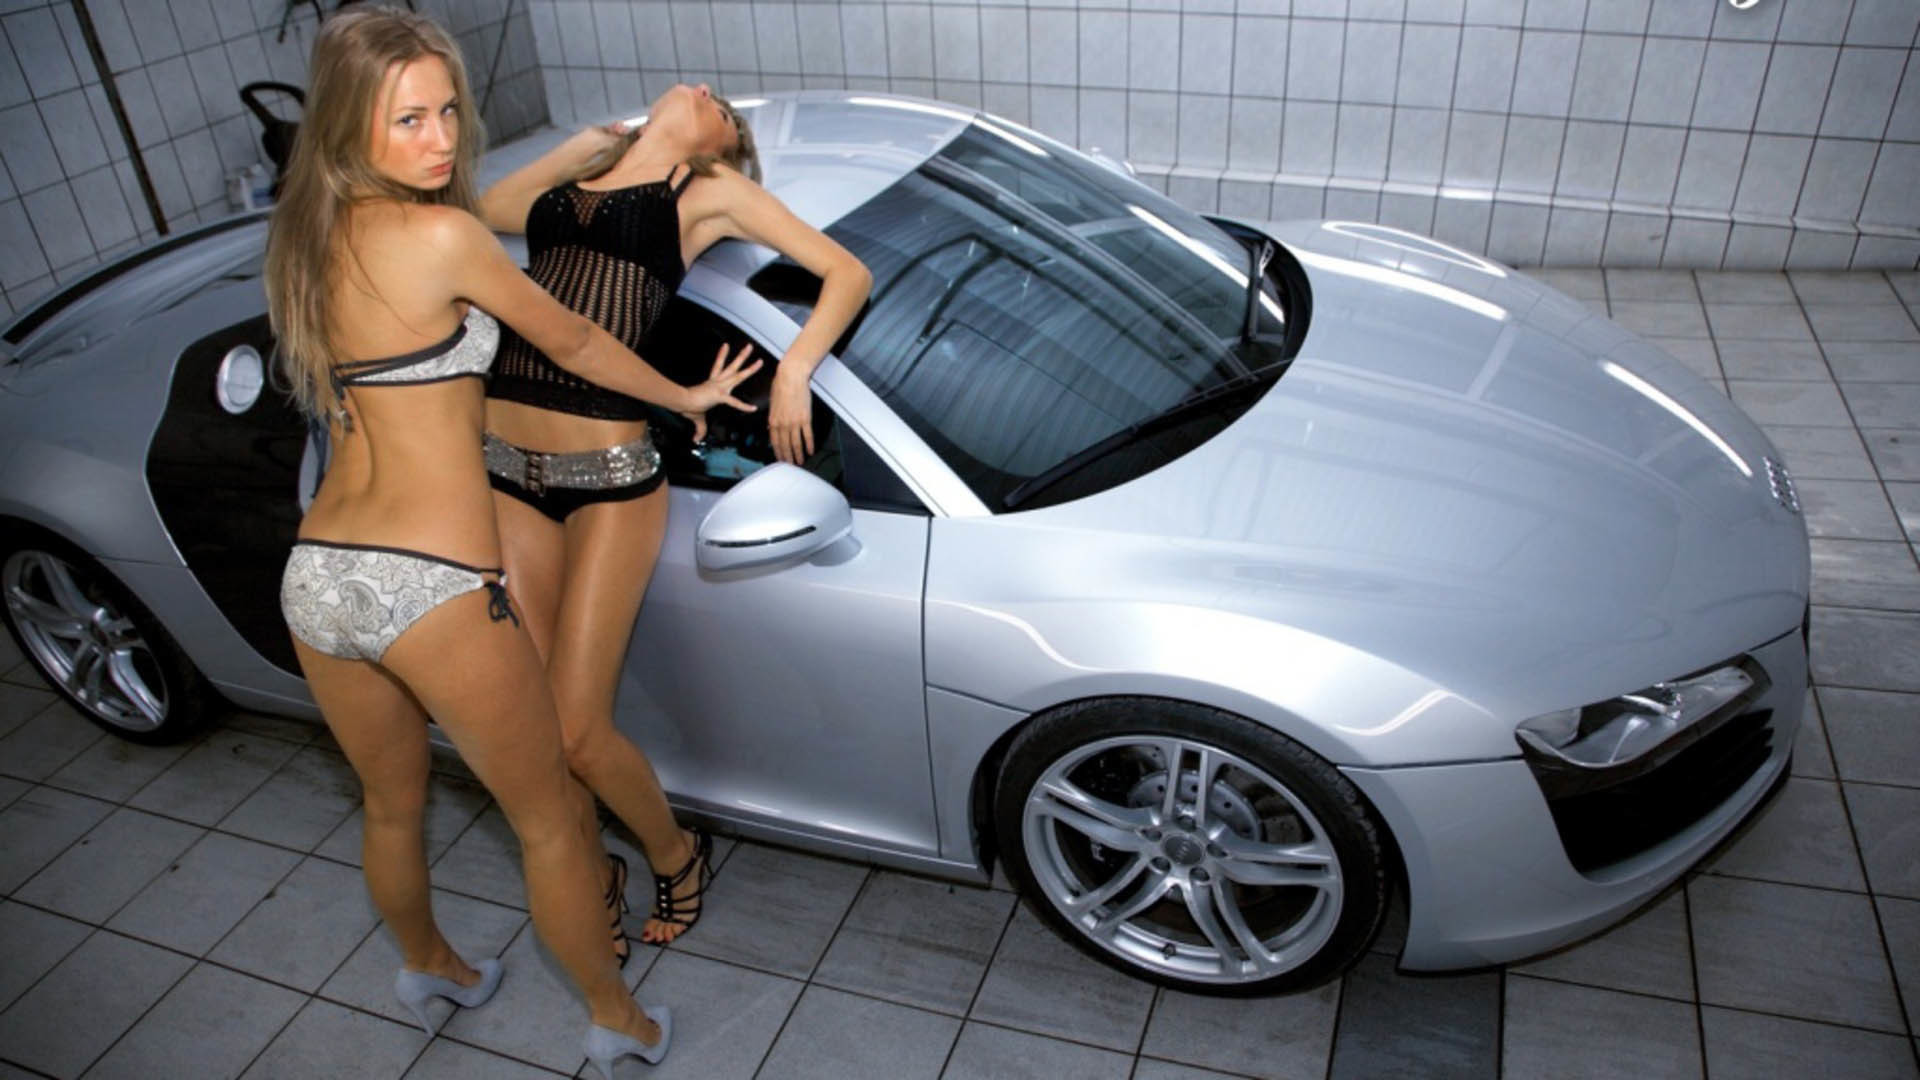 Sexy Lady And Cars On Pinterest. fast cars and girls wallpaper cool …